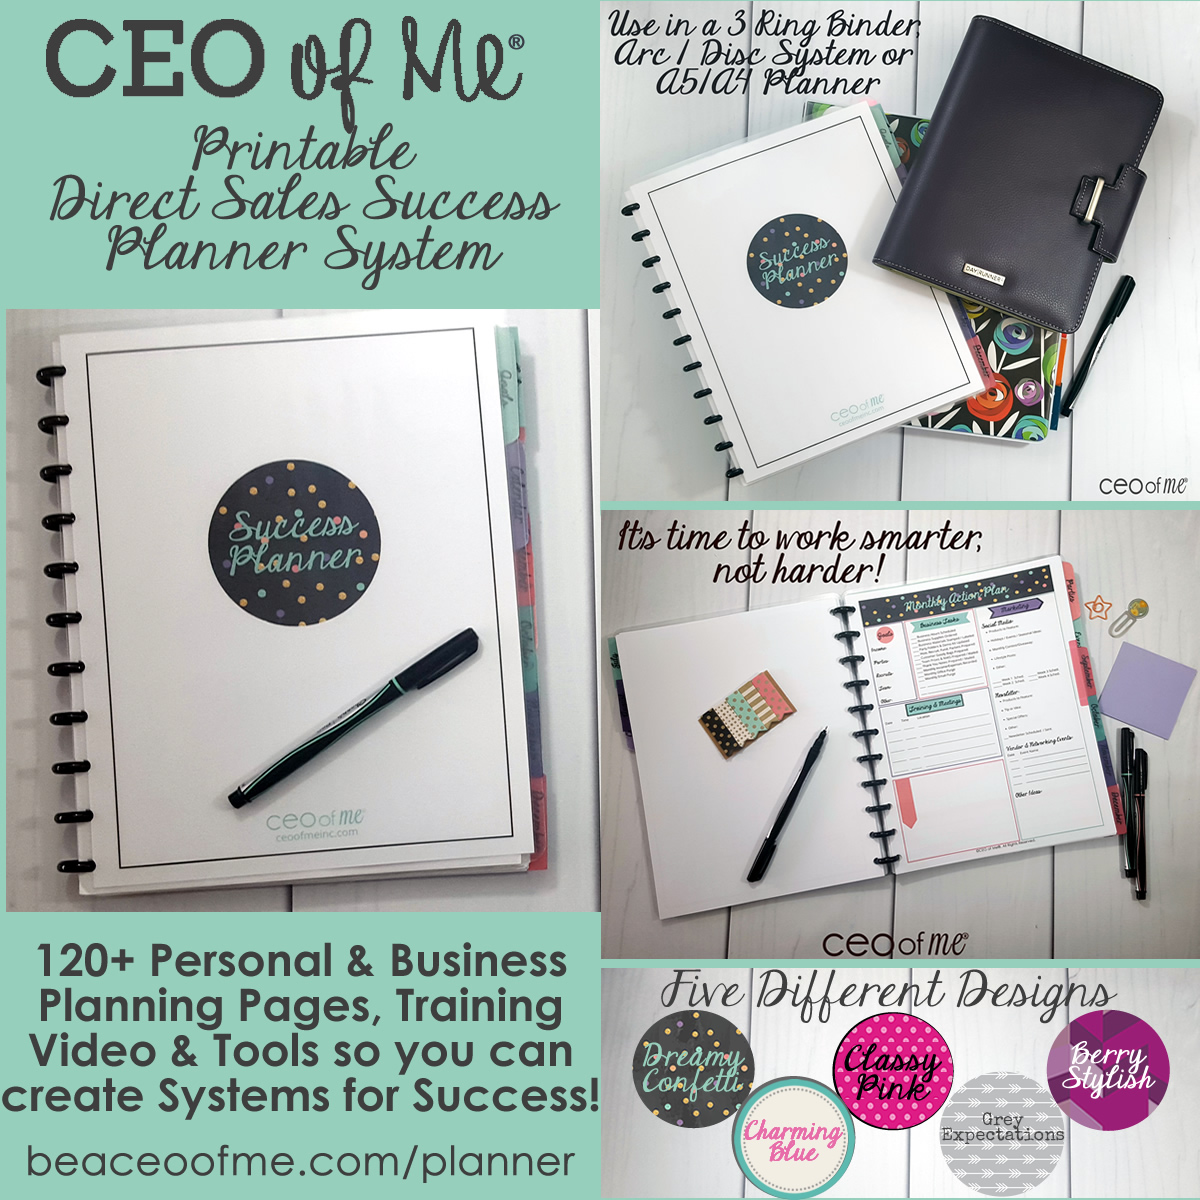 My favorite Direct Sales Planner System